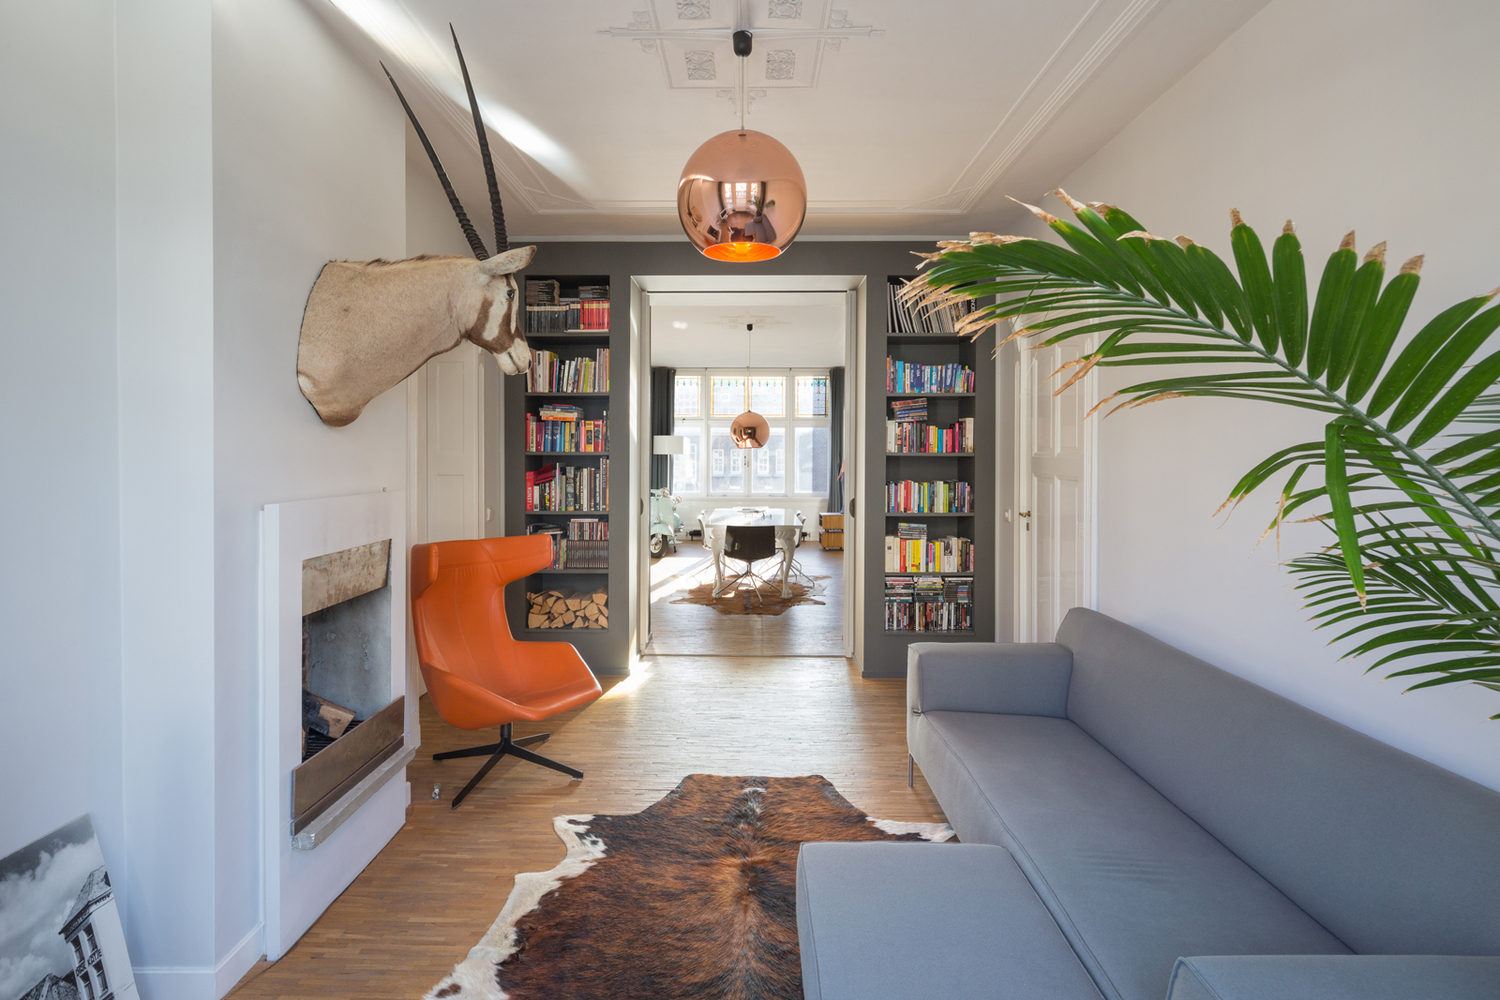 Gallery of Penthouse Rotterdam / Personal Architecture - 1